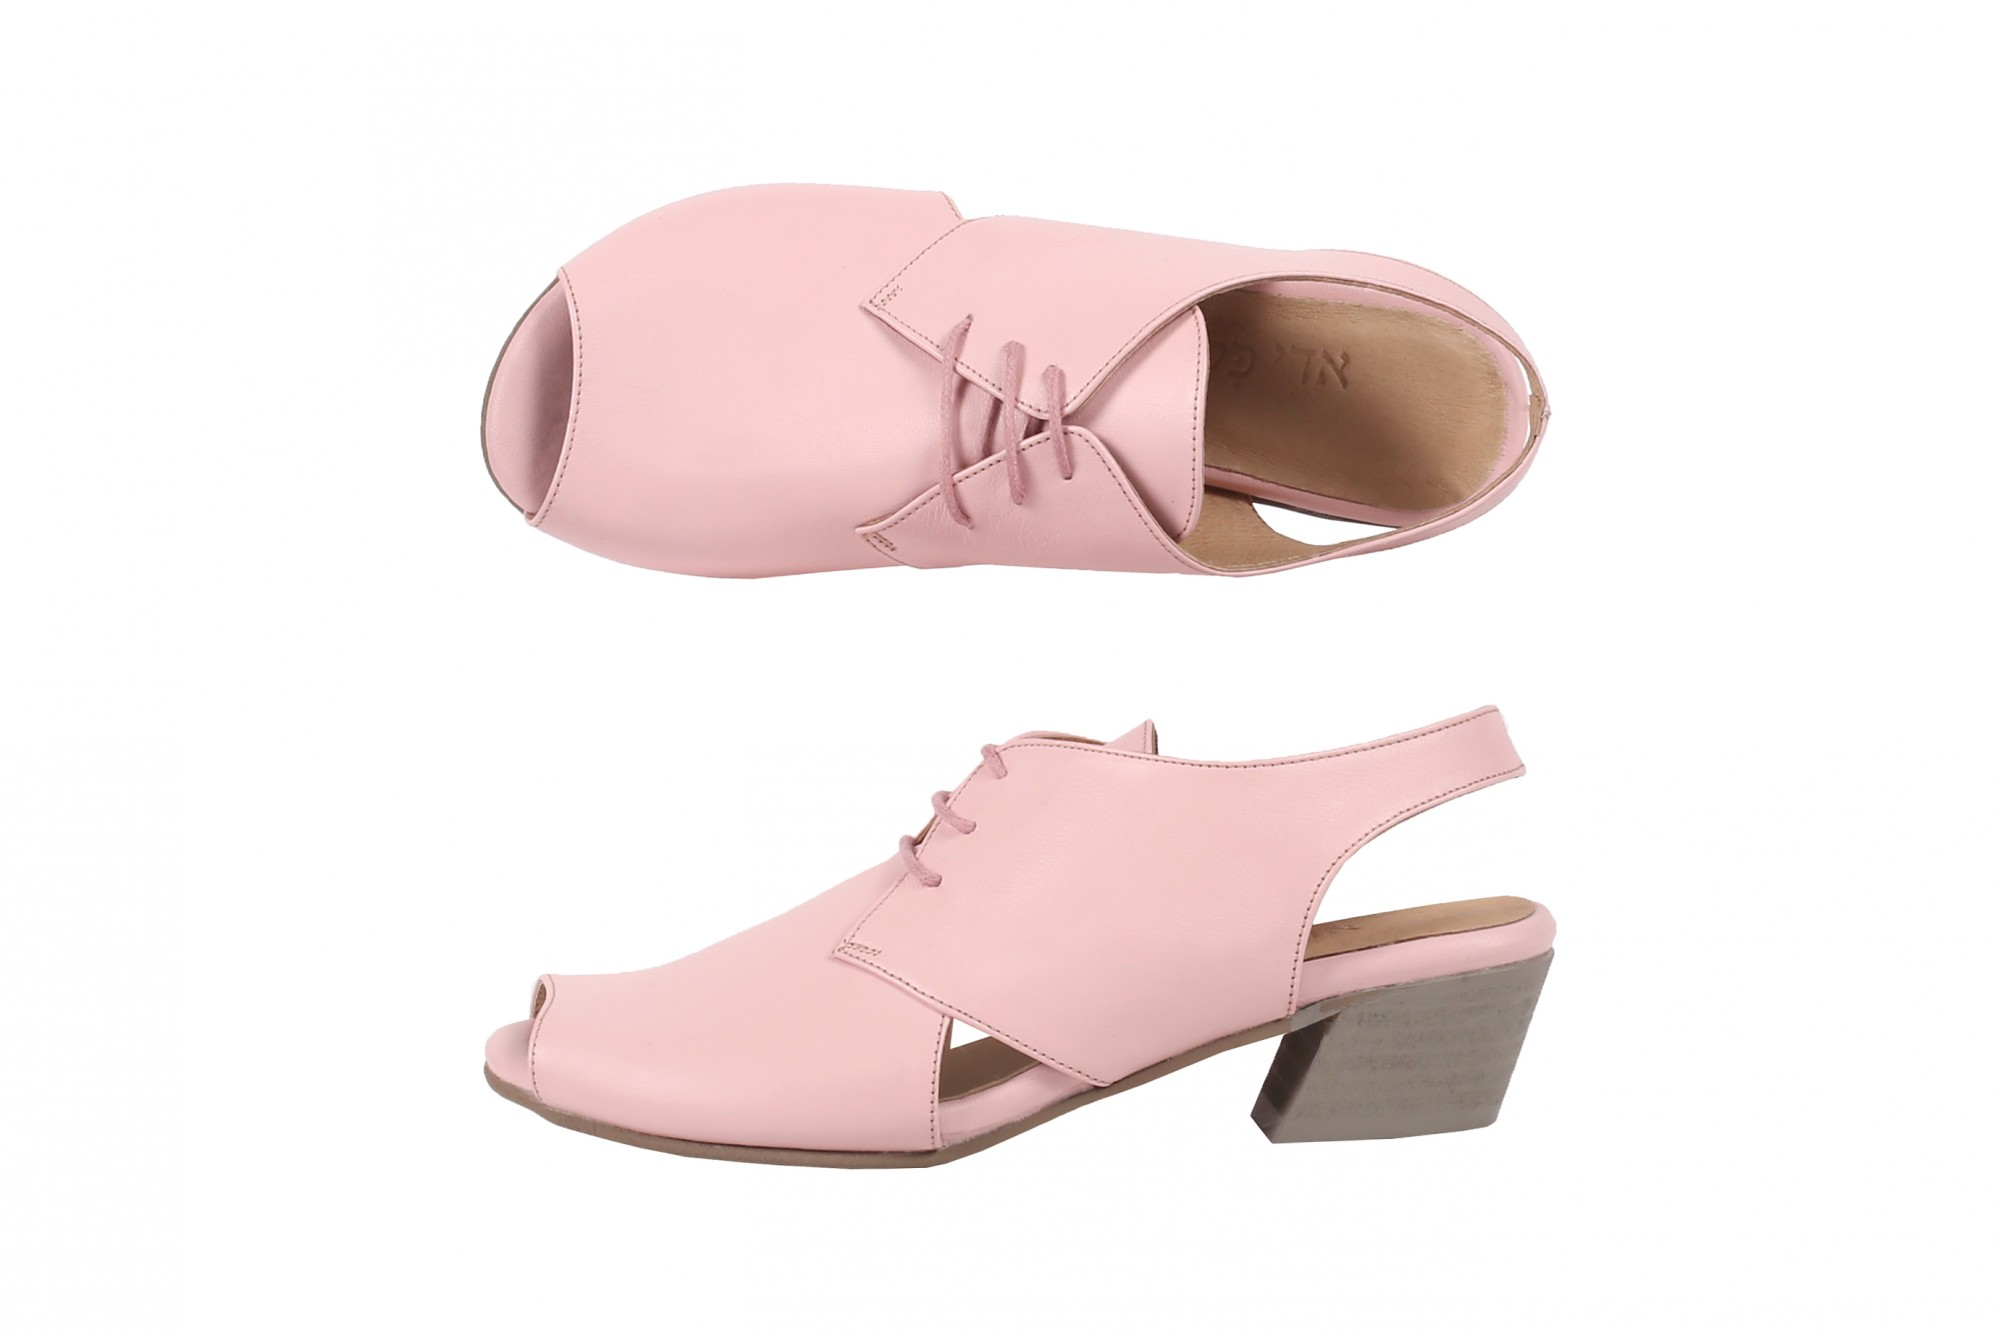 f50e9347a96ca Pink leather sandals